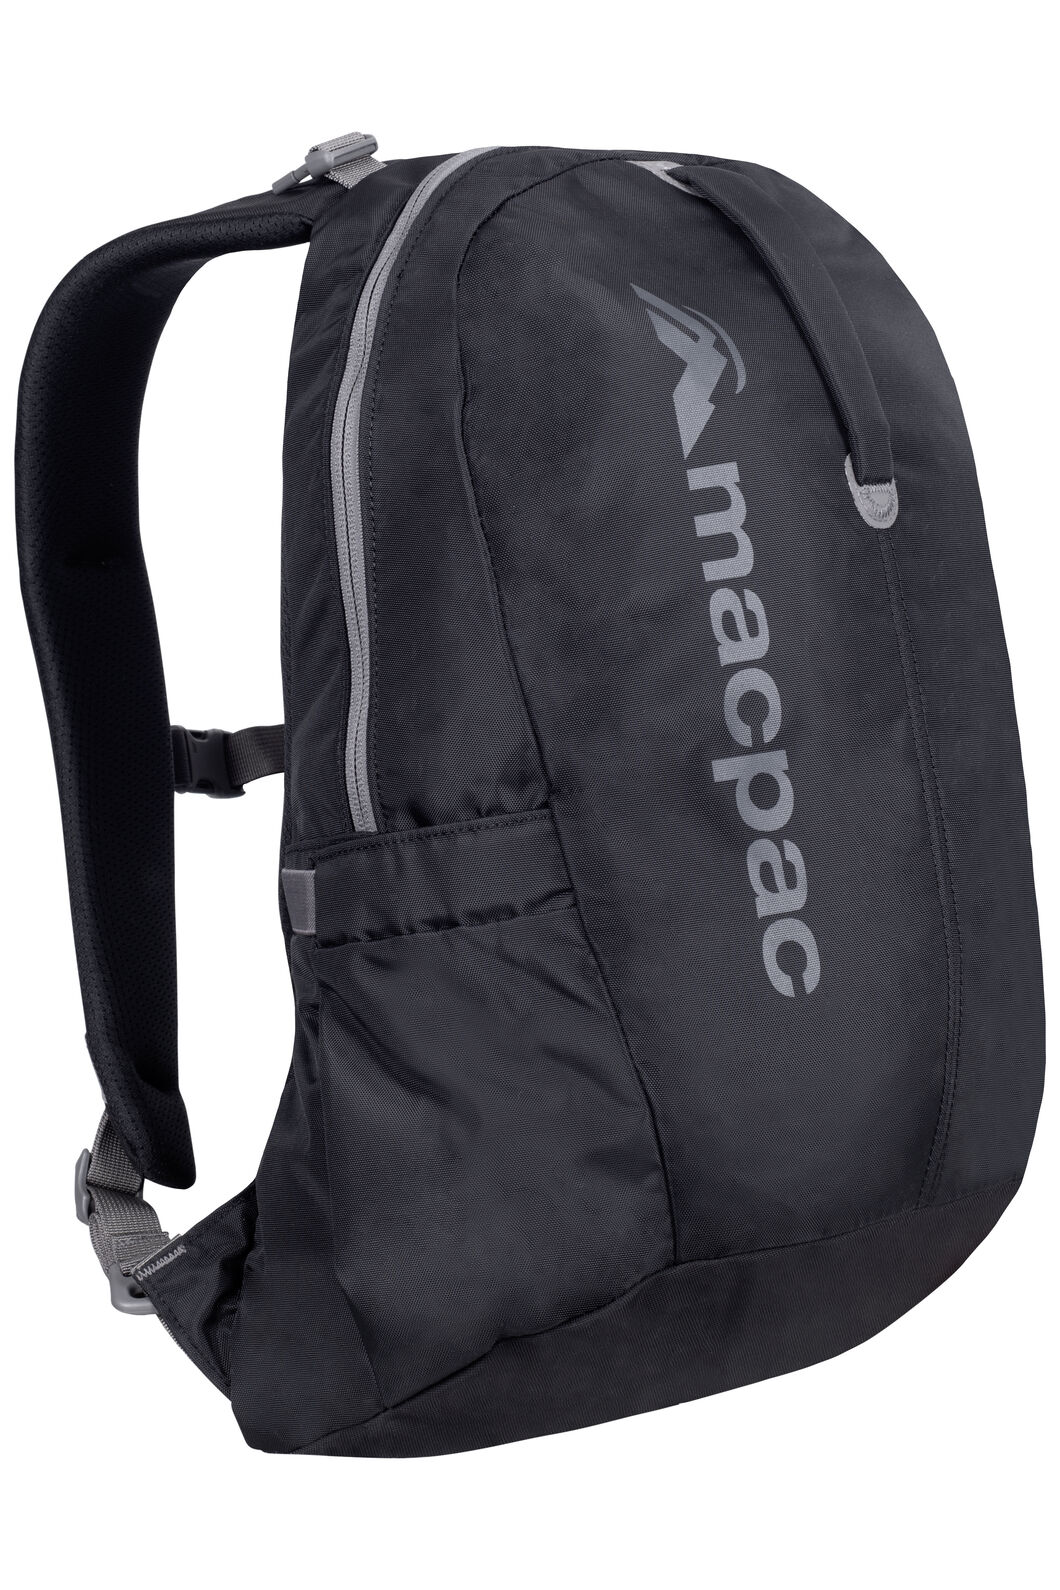 Macpac Limpet 16L Travel Pack, Black, hi-res